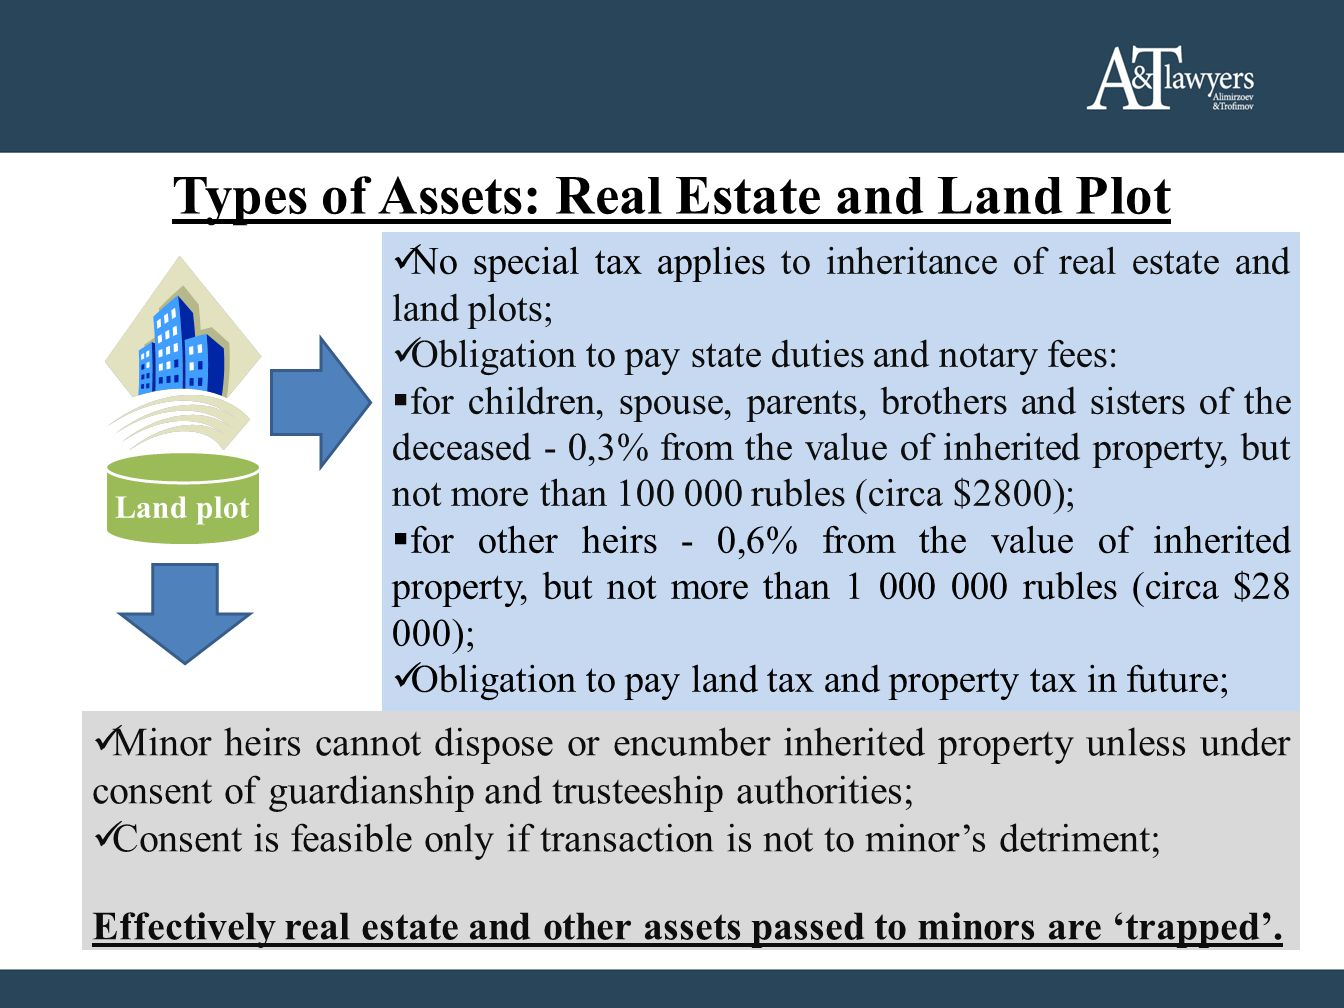 Types of Assets: Real Estate and Land Plot No special tax applies to inheritance of real estate and land plots; Obligation to pay state duties and notary fees: for children, spouse, parents, brothers and sisters of the deceased - 0,3% from the value of inherited property, but not more than 100 000 rubles (circa $2800); for other heirs - 0,6% from the value of inherited property, but not more than 1 000 000 rubles (circa $28 000); Obligation to pay land tax and property tax in future; Land plot Minor heirs cannot dispose or encumber inherited property unless under consent of guardianship and trusteeship authorities; Consent is feasible only if transaction is not to minors detriment; Effectively real estate and other assets passed to minors are trapped.